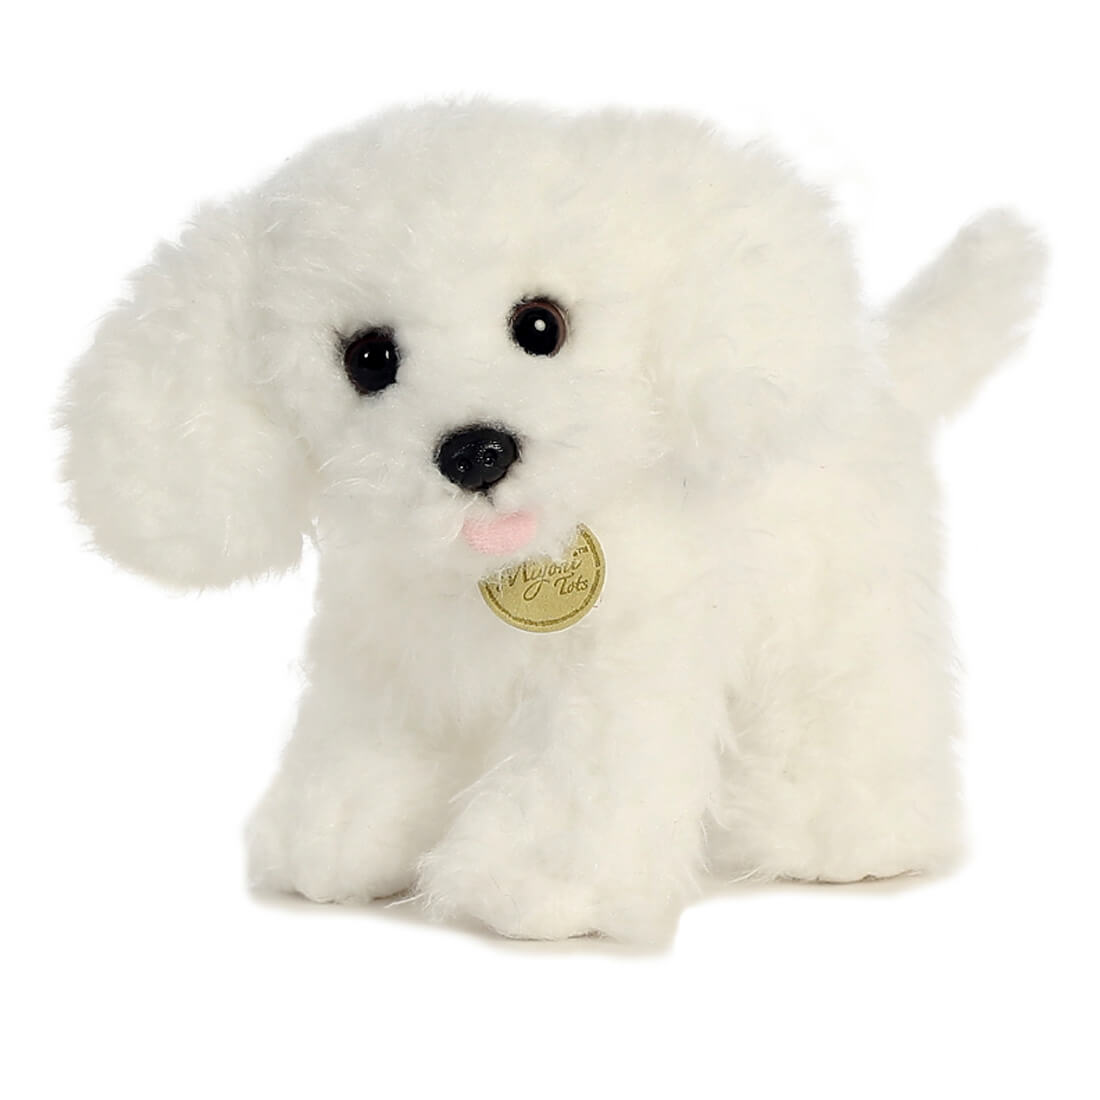 bichon frise plush animal toy by aurora